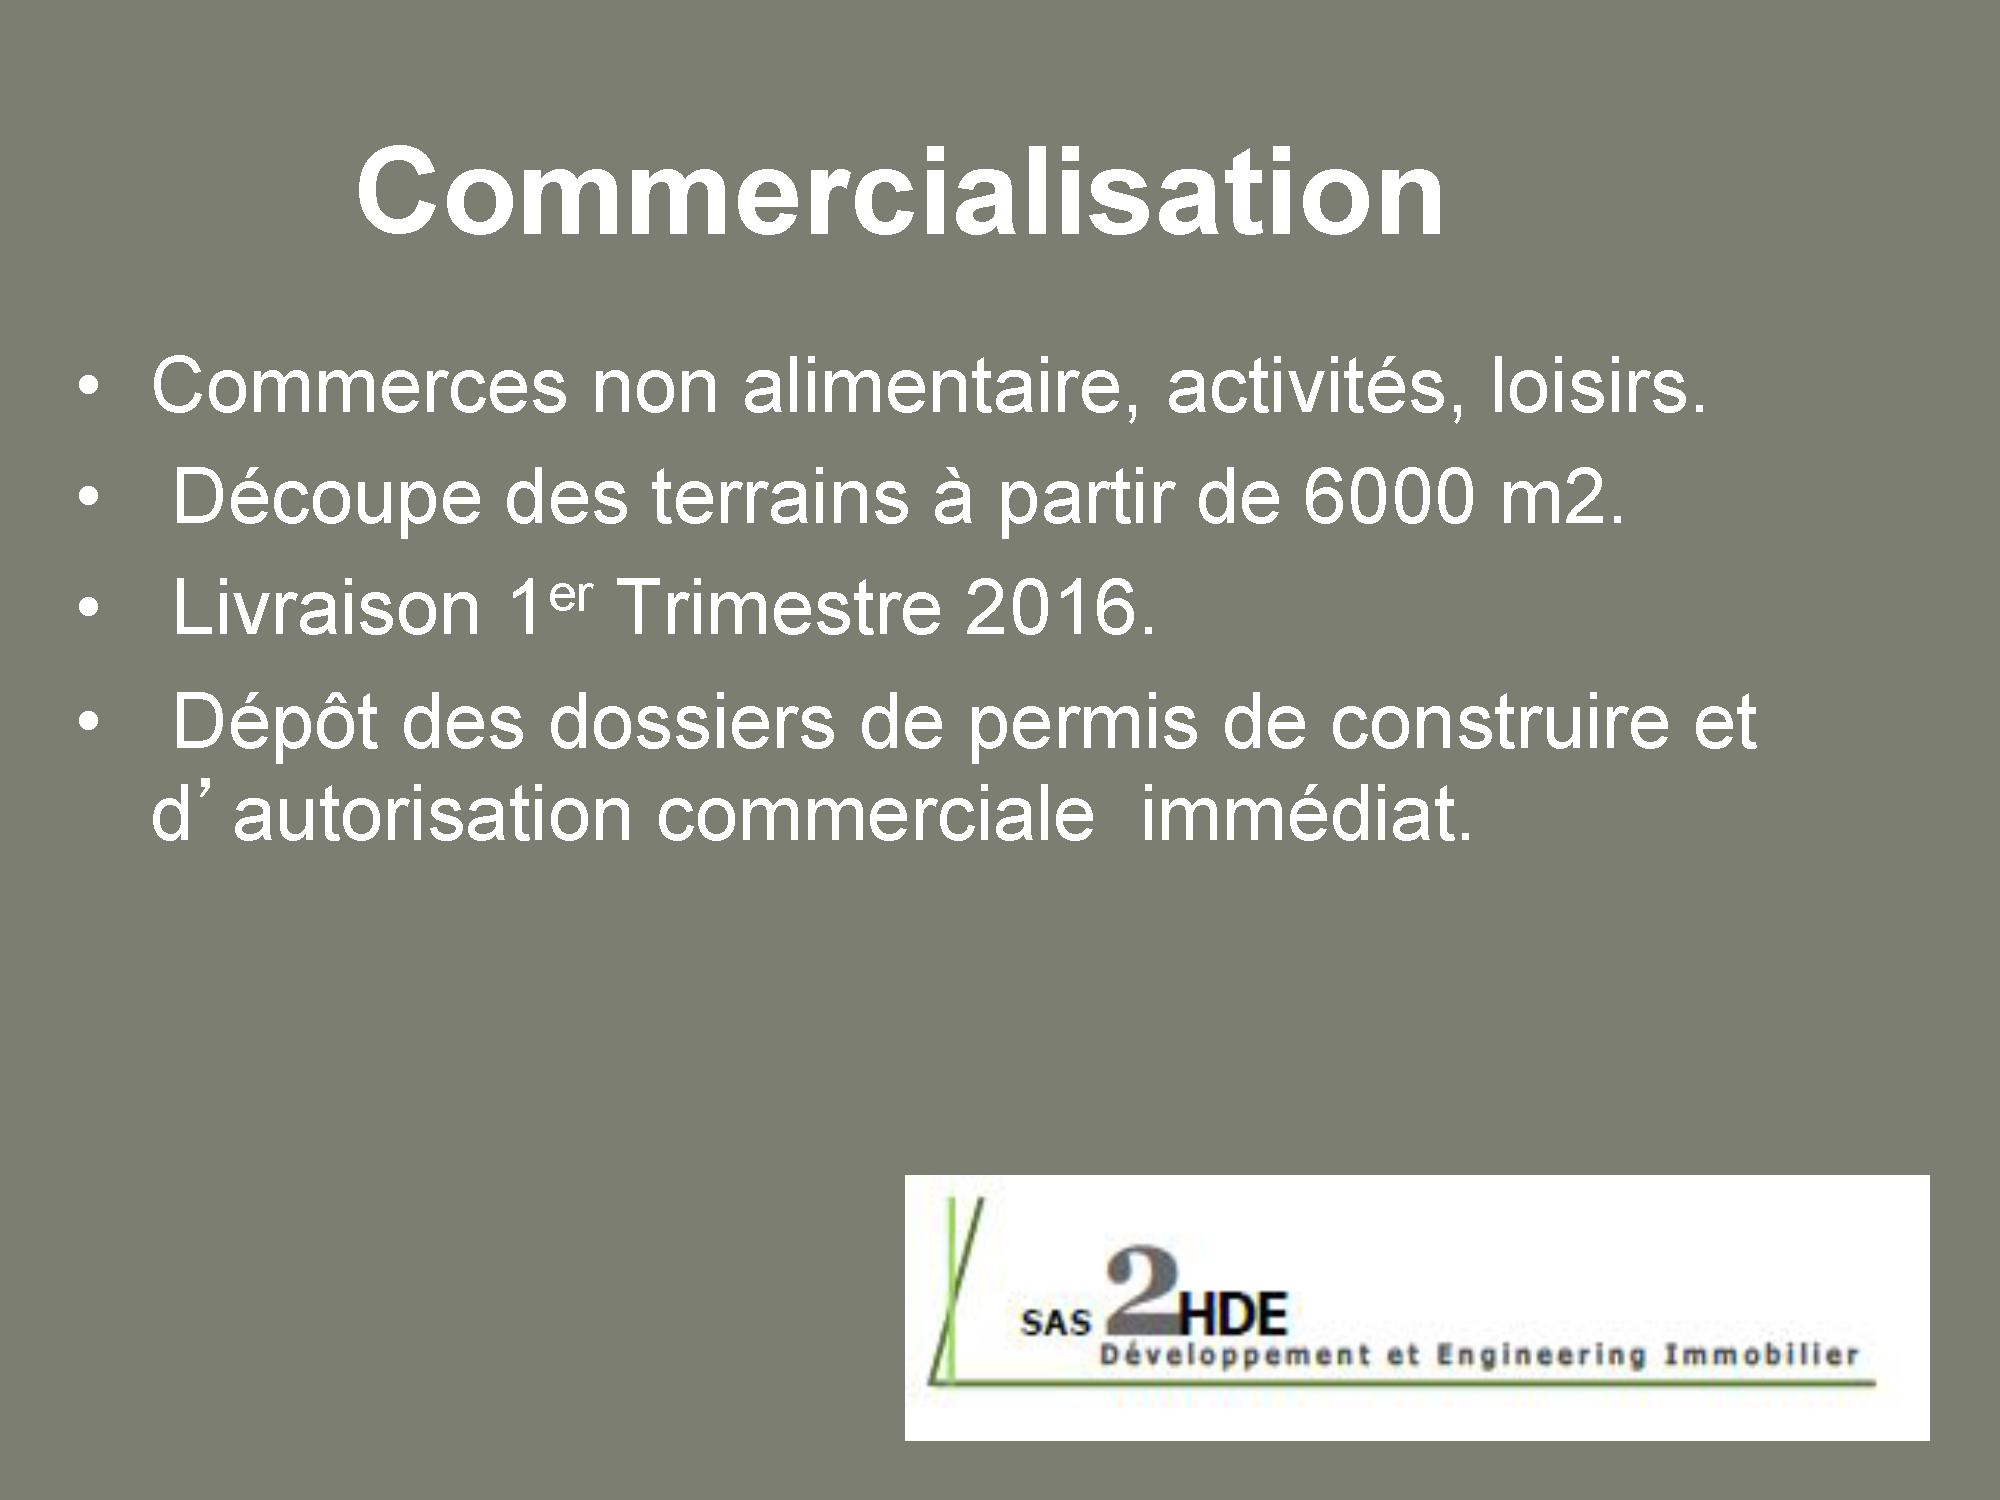 Yebles Dossier Commercialisation NEUTRE r 070715 Page 04